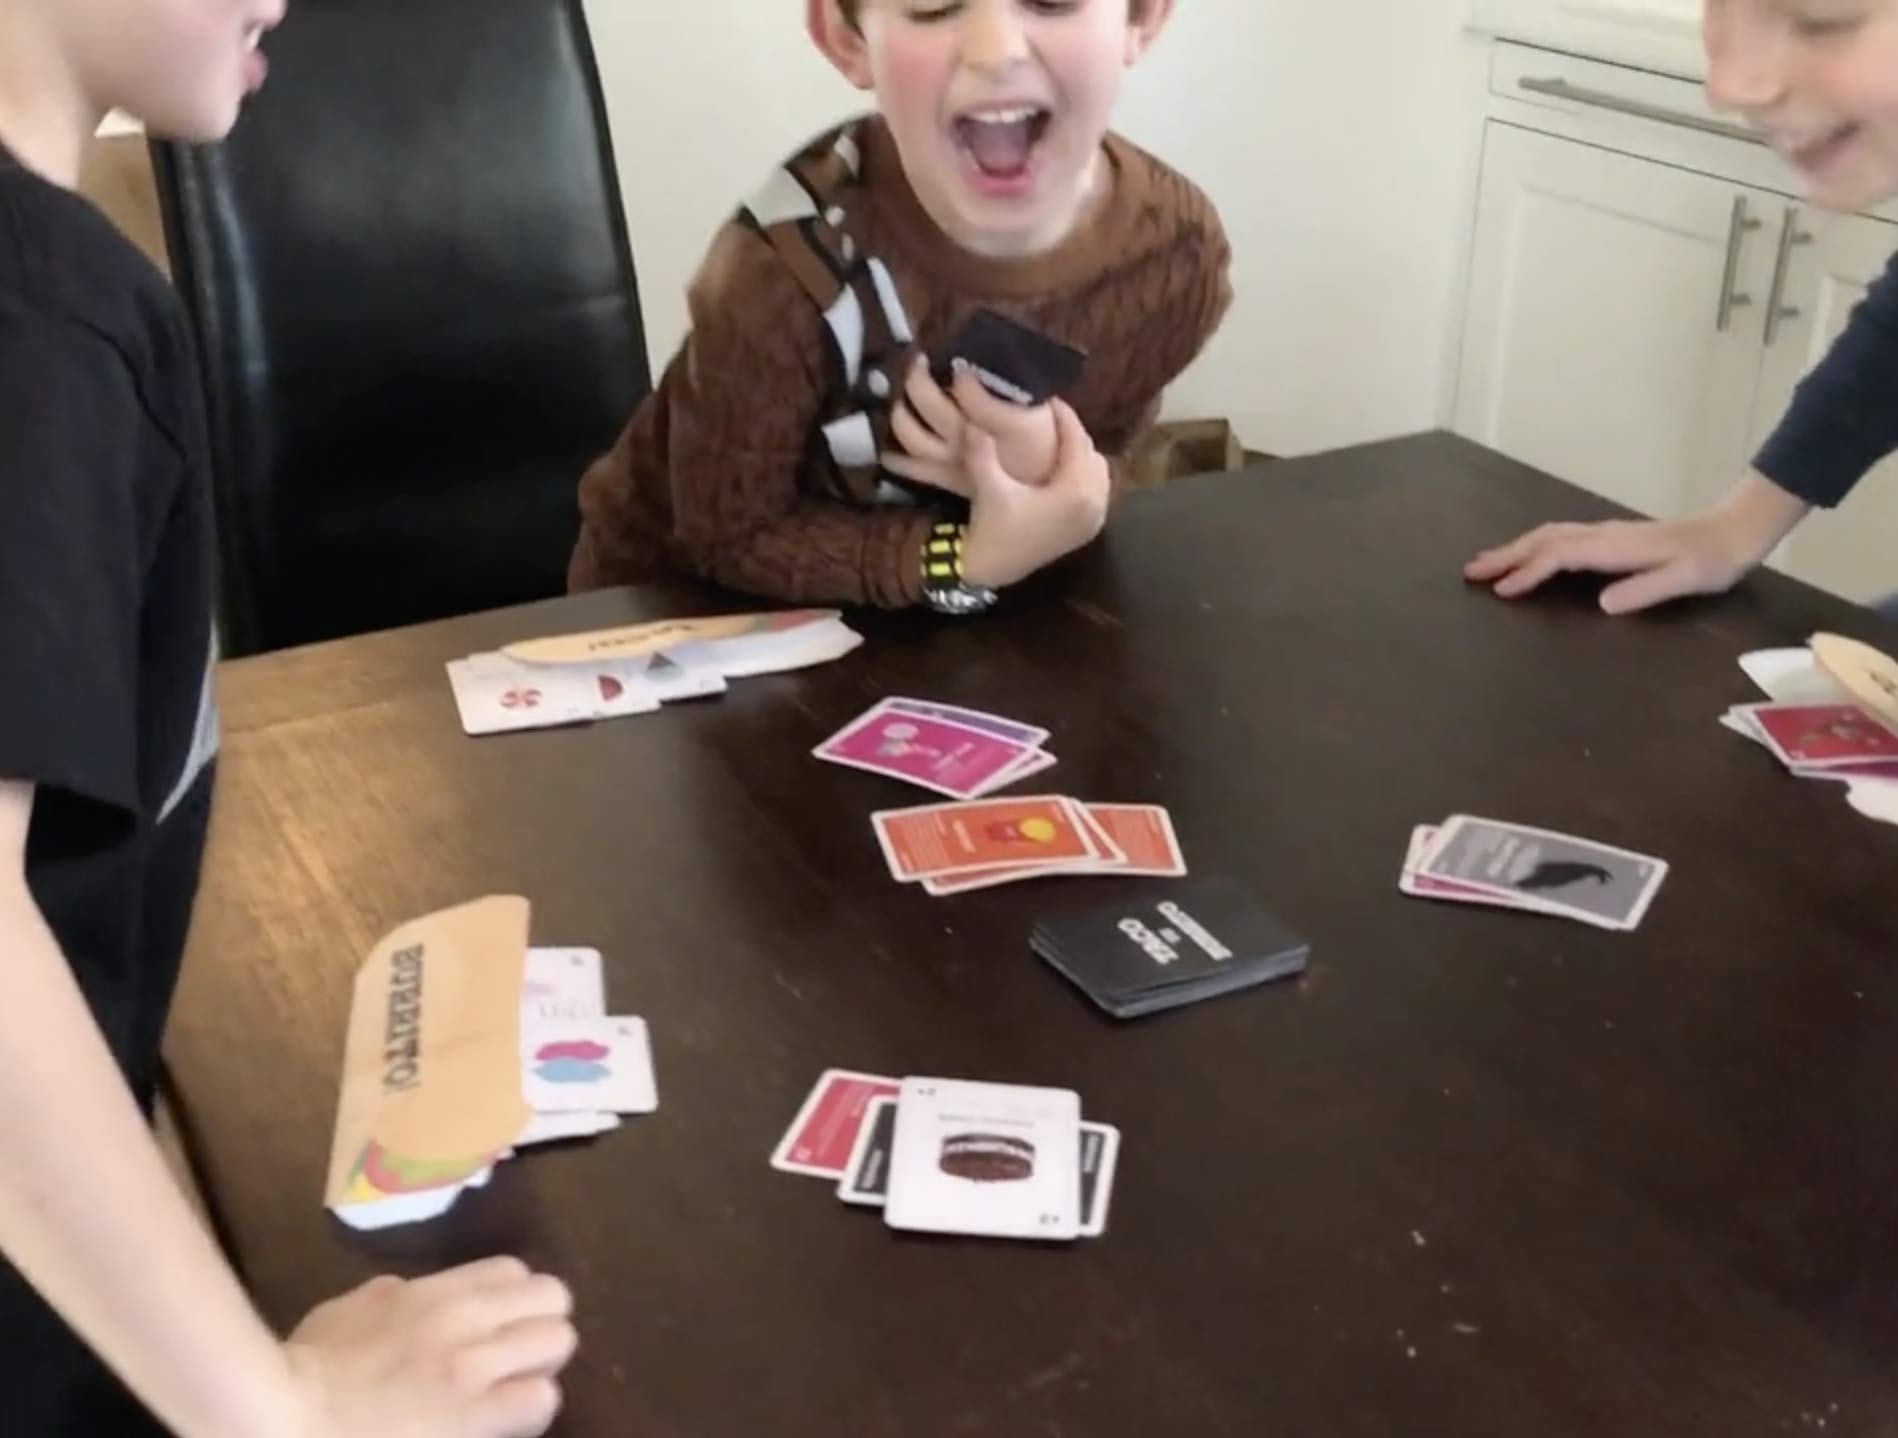 Taco vs Burrito - The Wildly Popular Surprisingly Strategic Card Game Created by a 7 Year Old by Taco vs Burrito